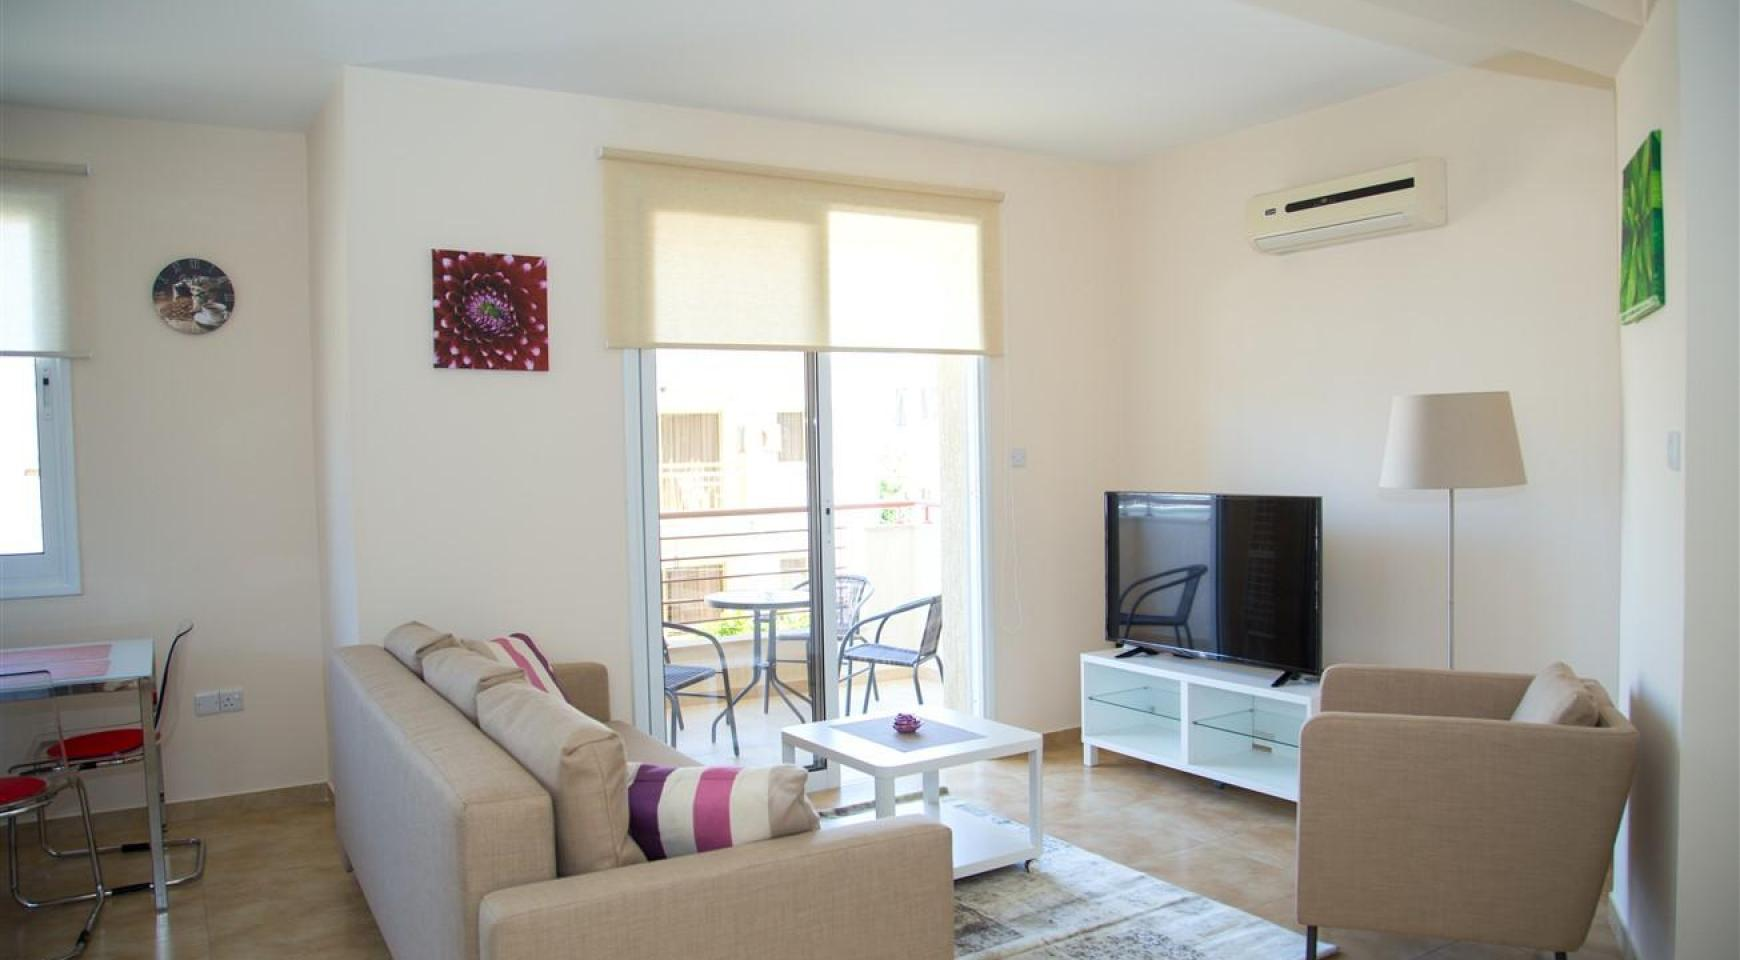 Luxury One Bedroom Apartment Frida 204 in the Tourist Area - 1